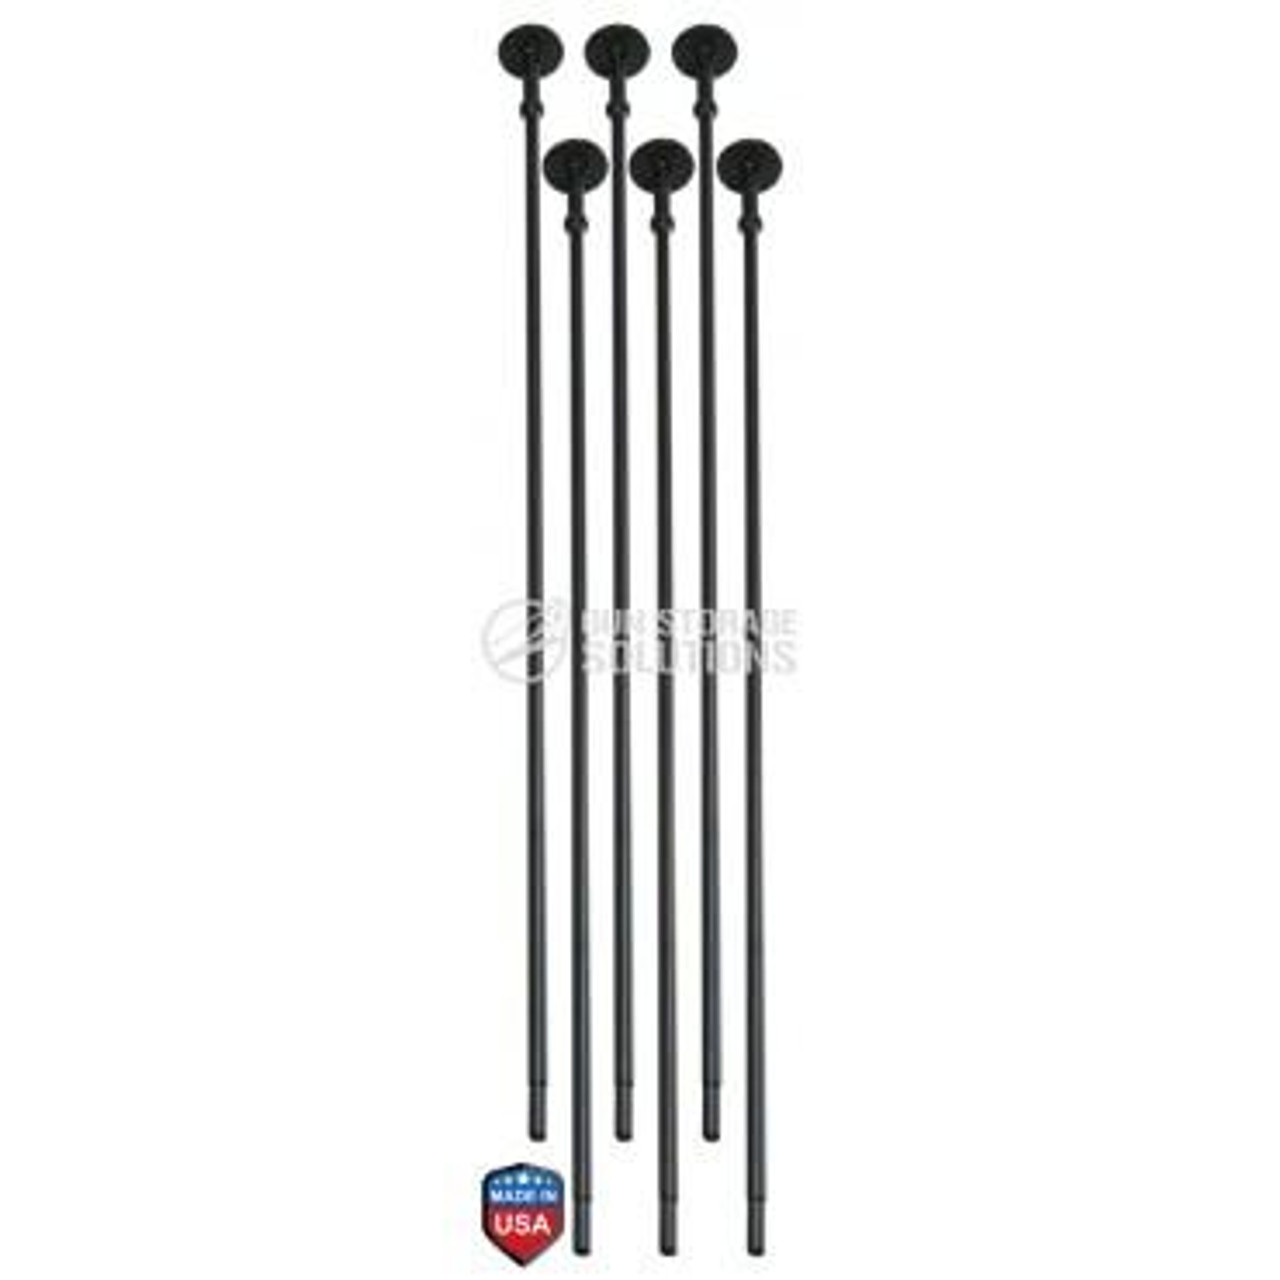 Rifle Rods 6 Pack Expansion Kit